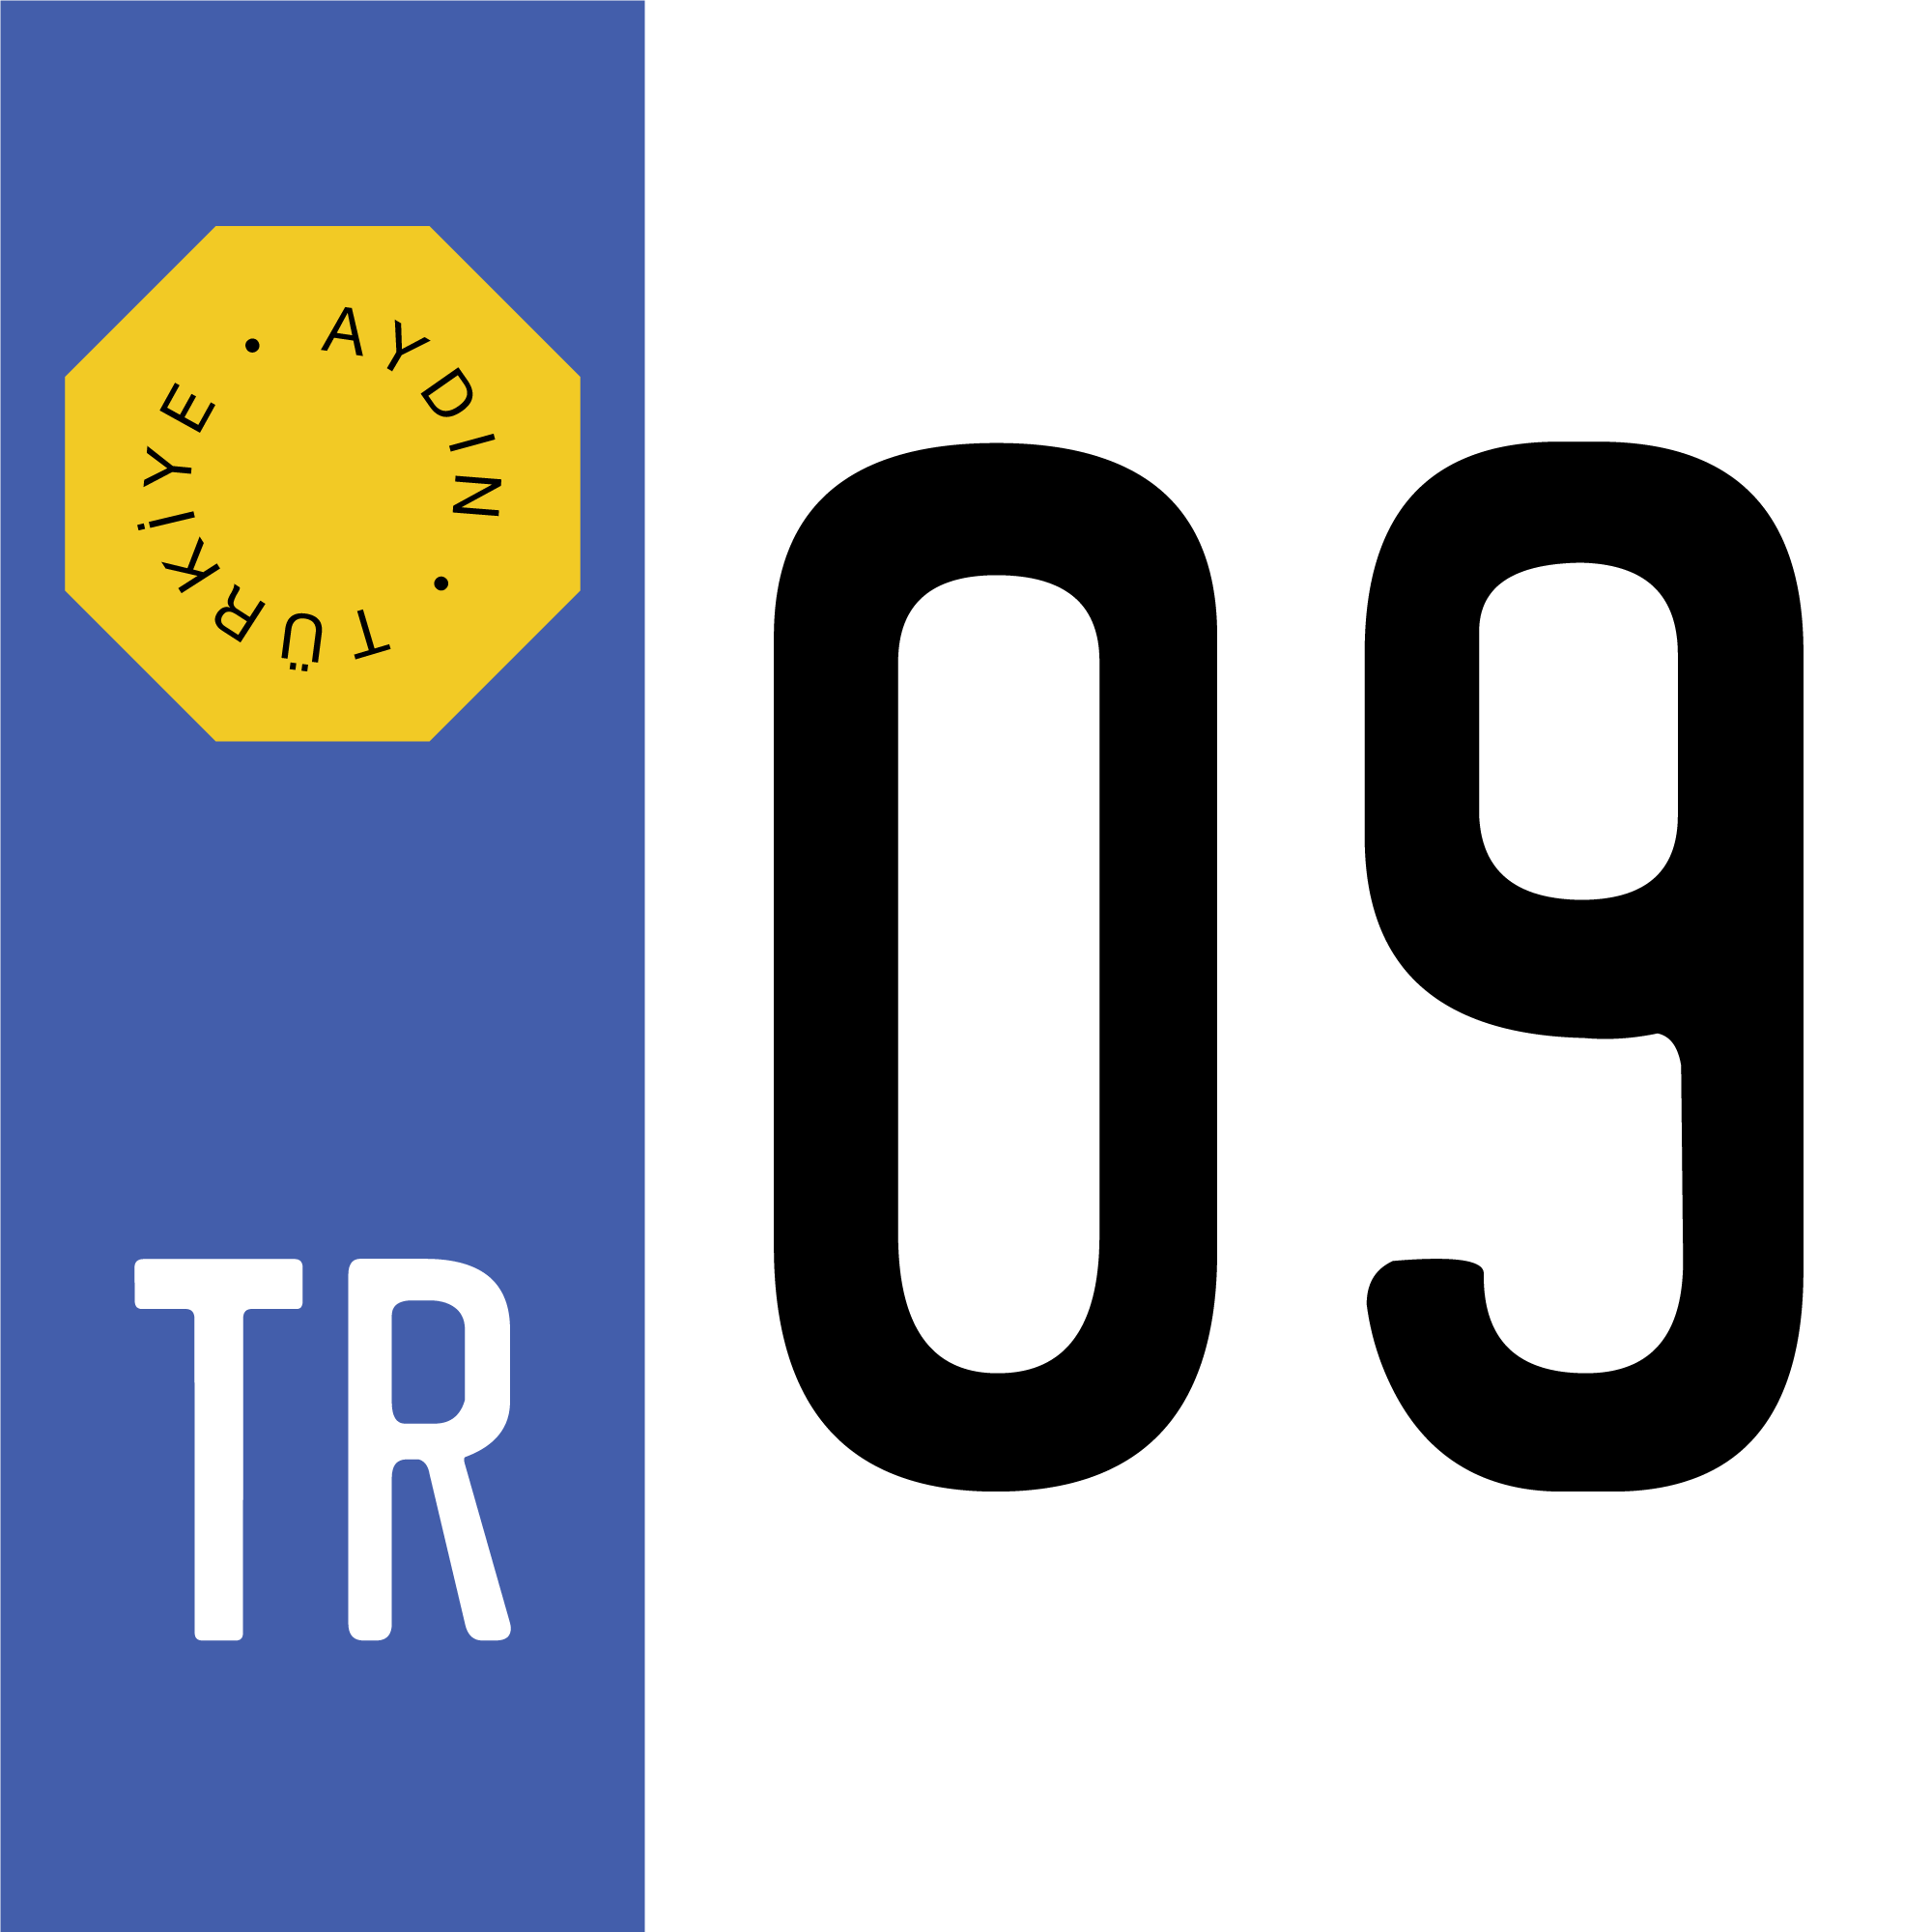 turkish-license-plate-09-aydin-province